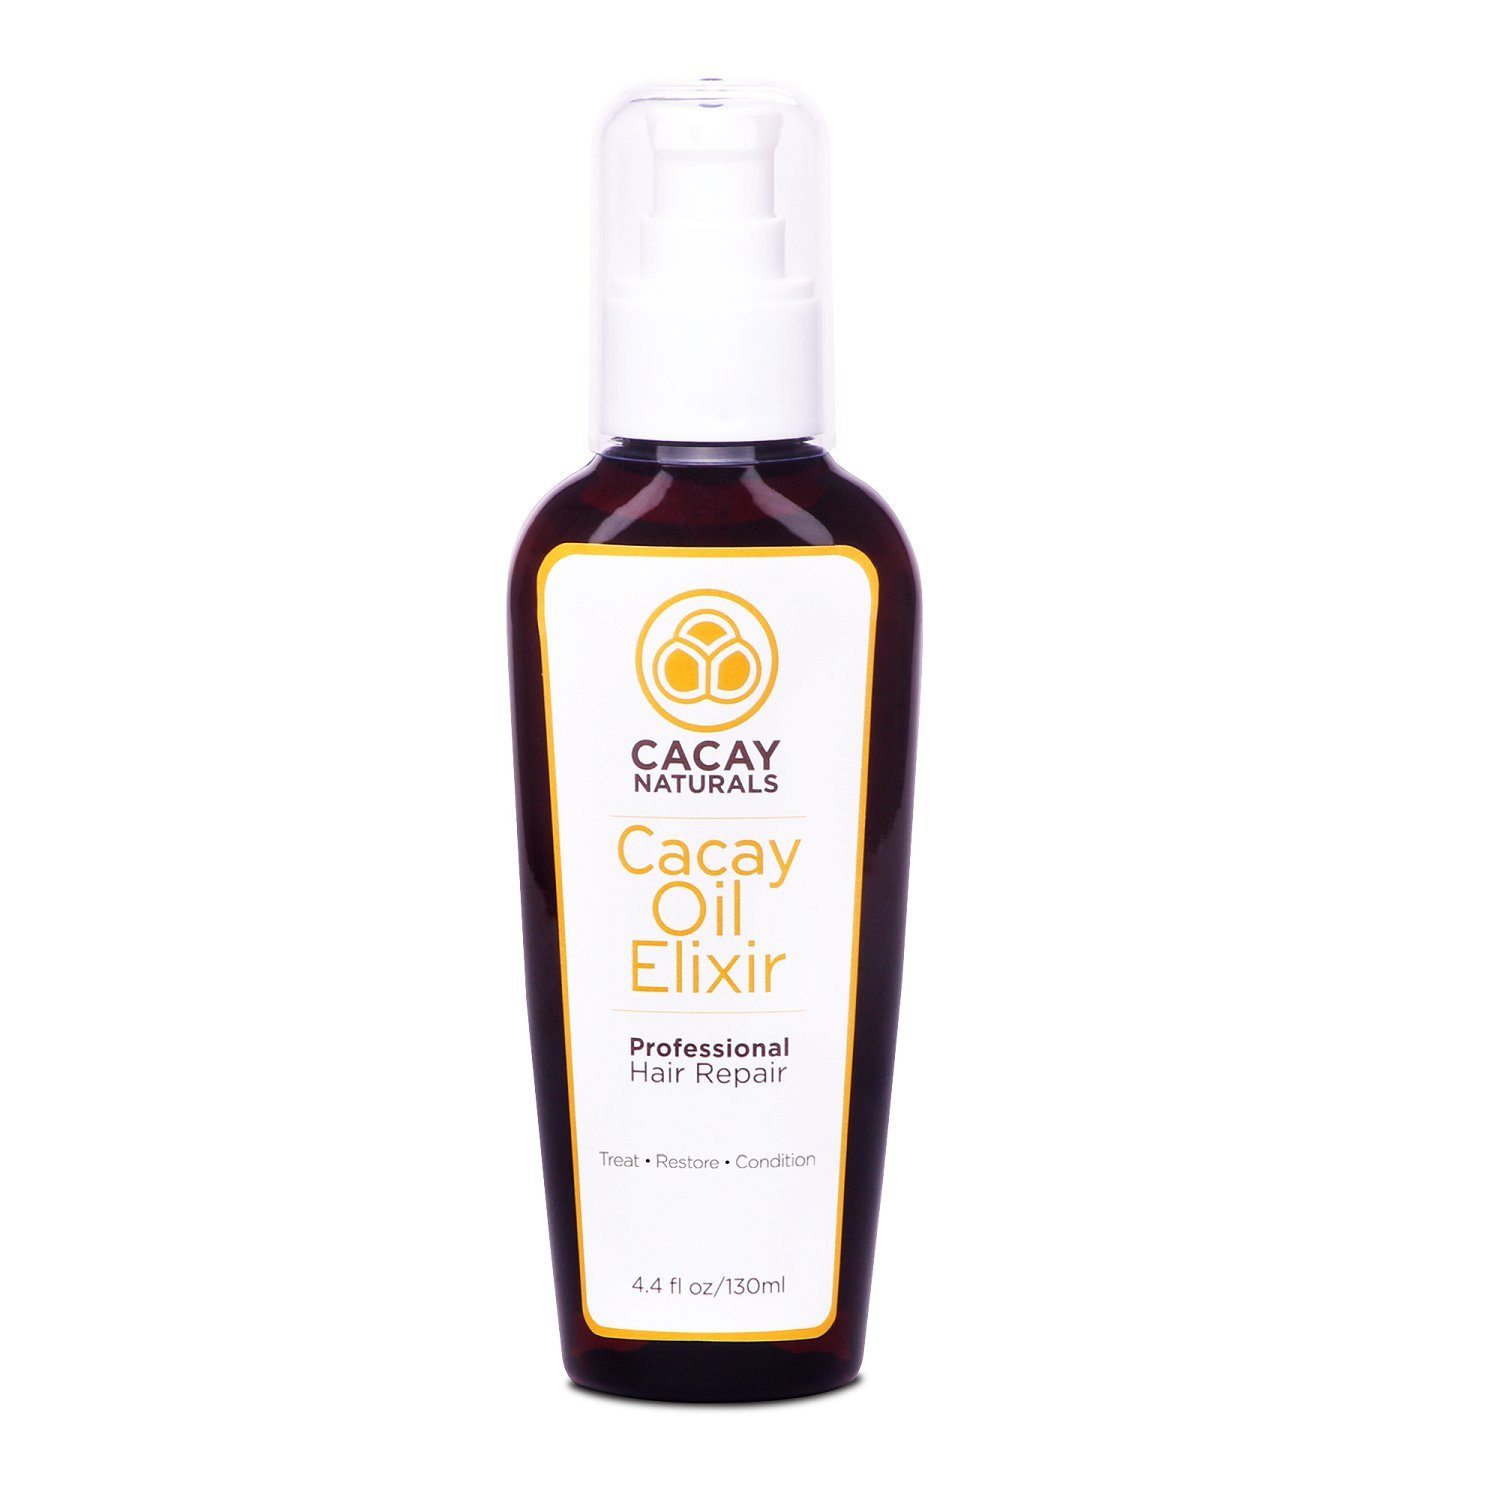 Cacay Naturals - Cacay Oil Elixir - Best Hair Repair with Cacay Oil. Treat, Condition and Restore, 4.4 fl.oz (130 ml)